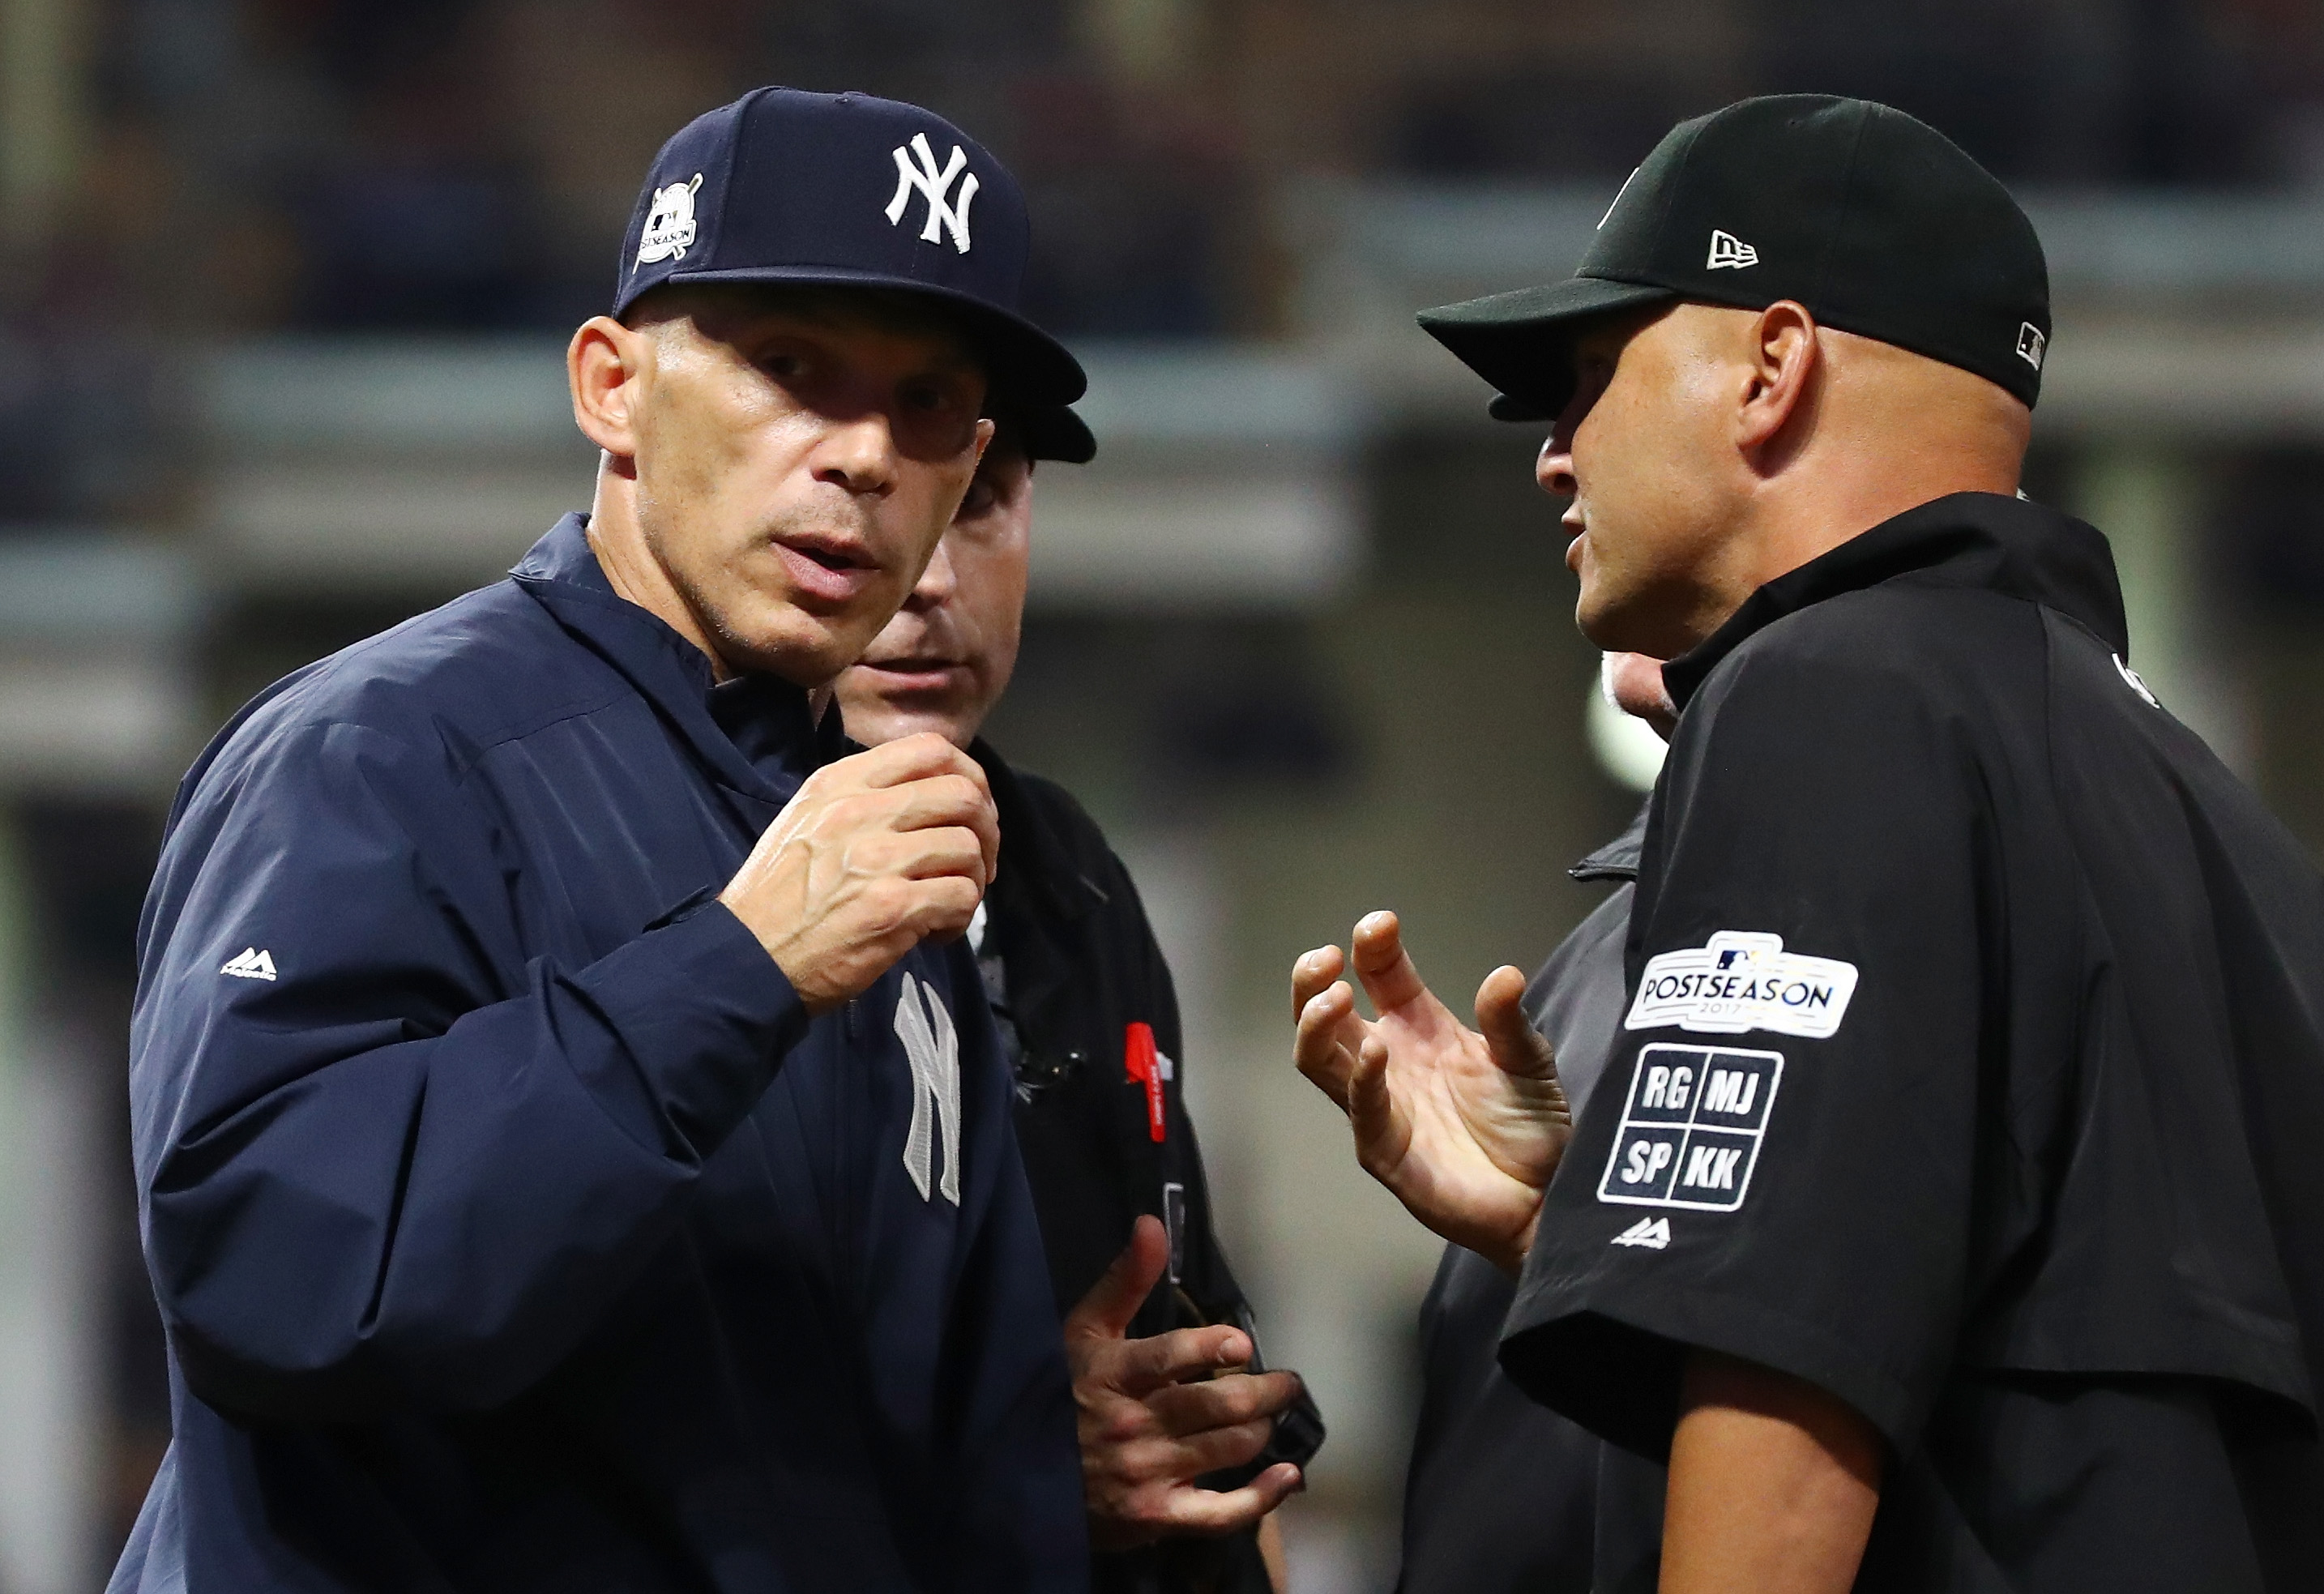 Tanaka earns 1st playoff win in majors to keep Yankees alive